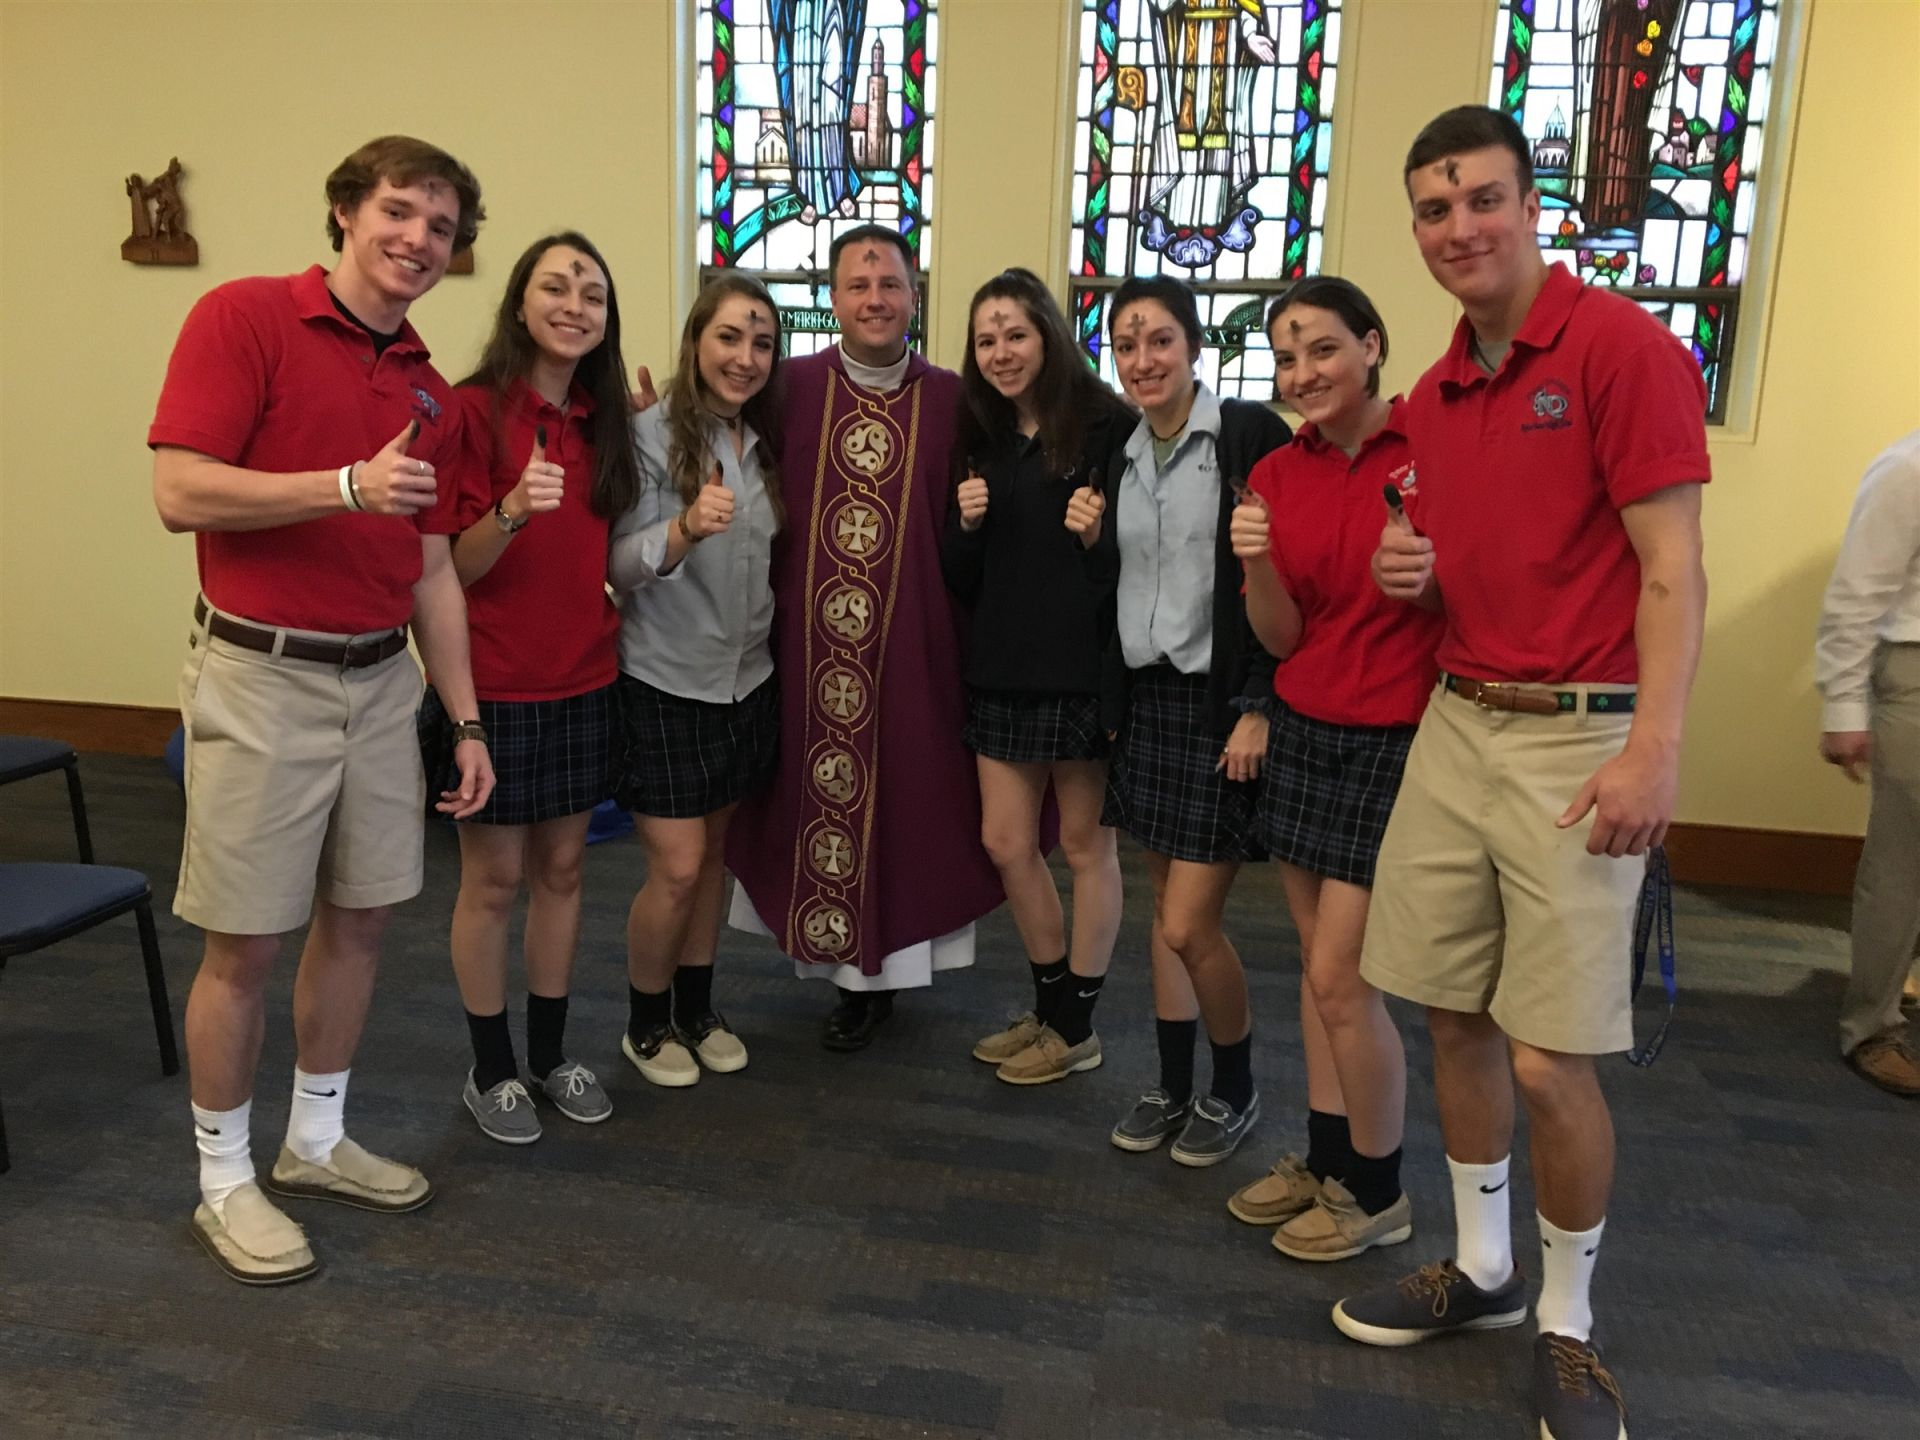 Mass was celebrated and ashes distributed on Wednesday morning during our Ash Wednesday Liturgy